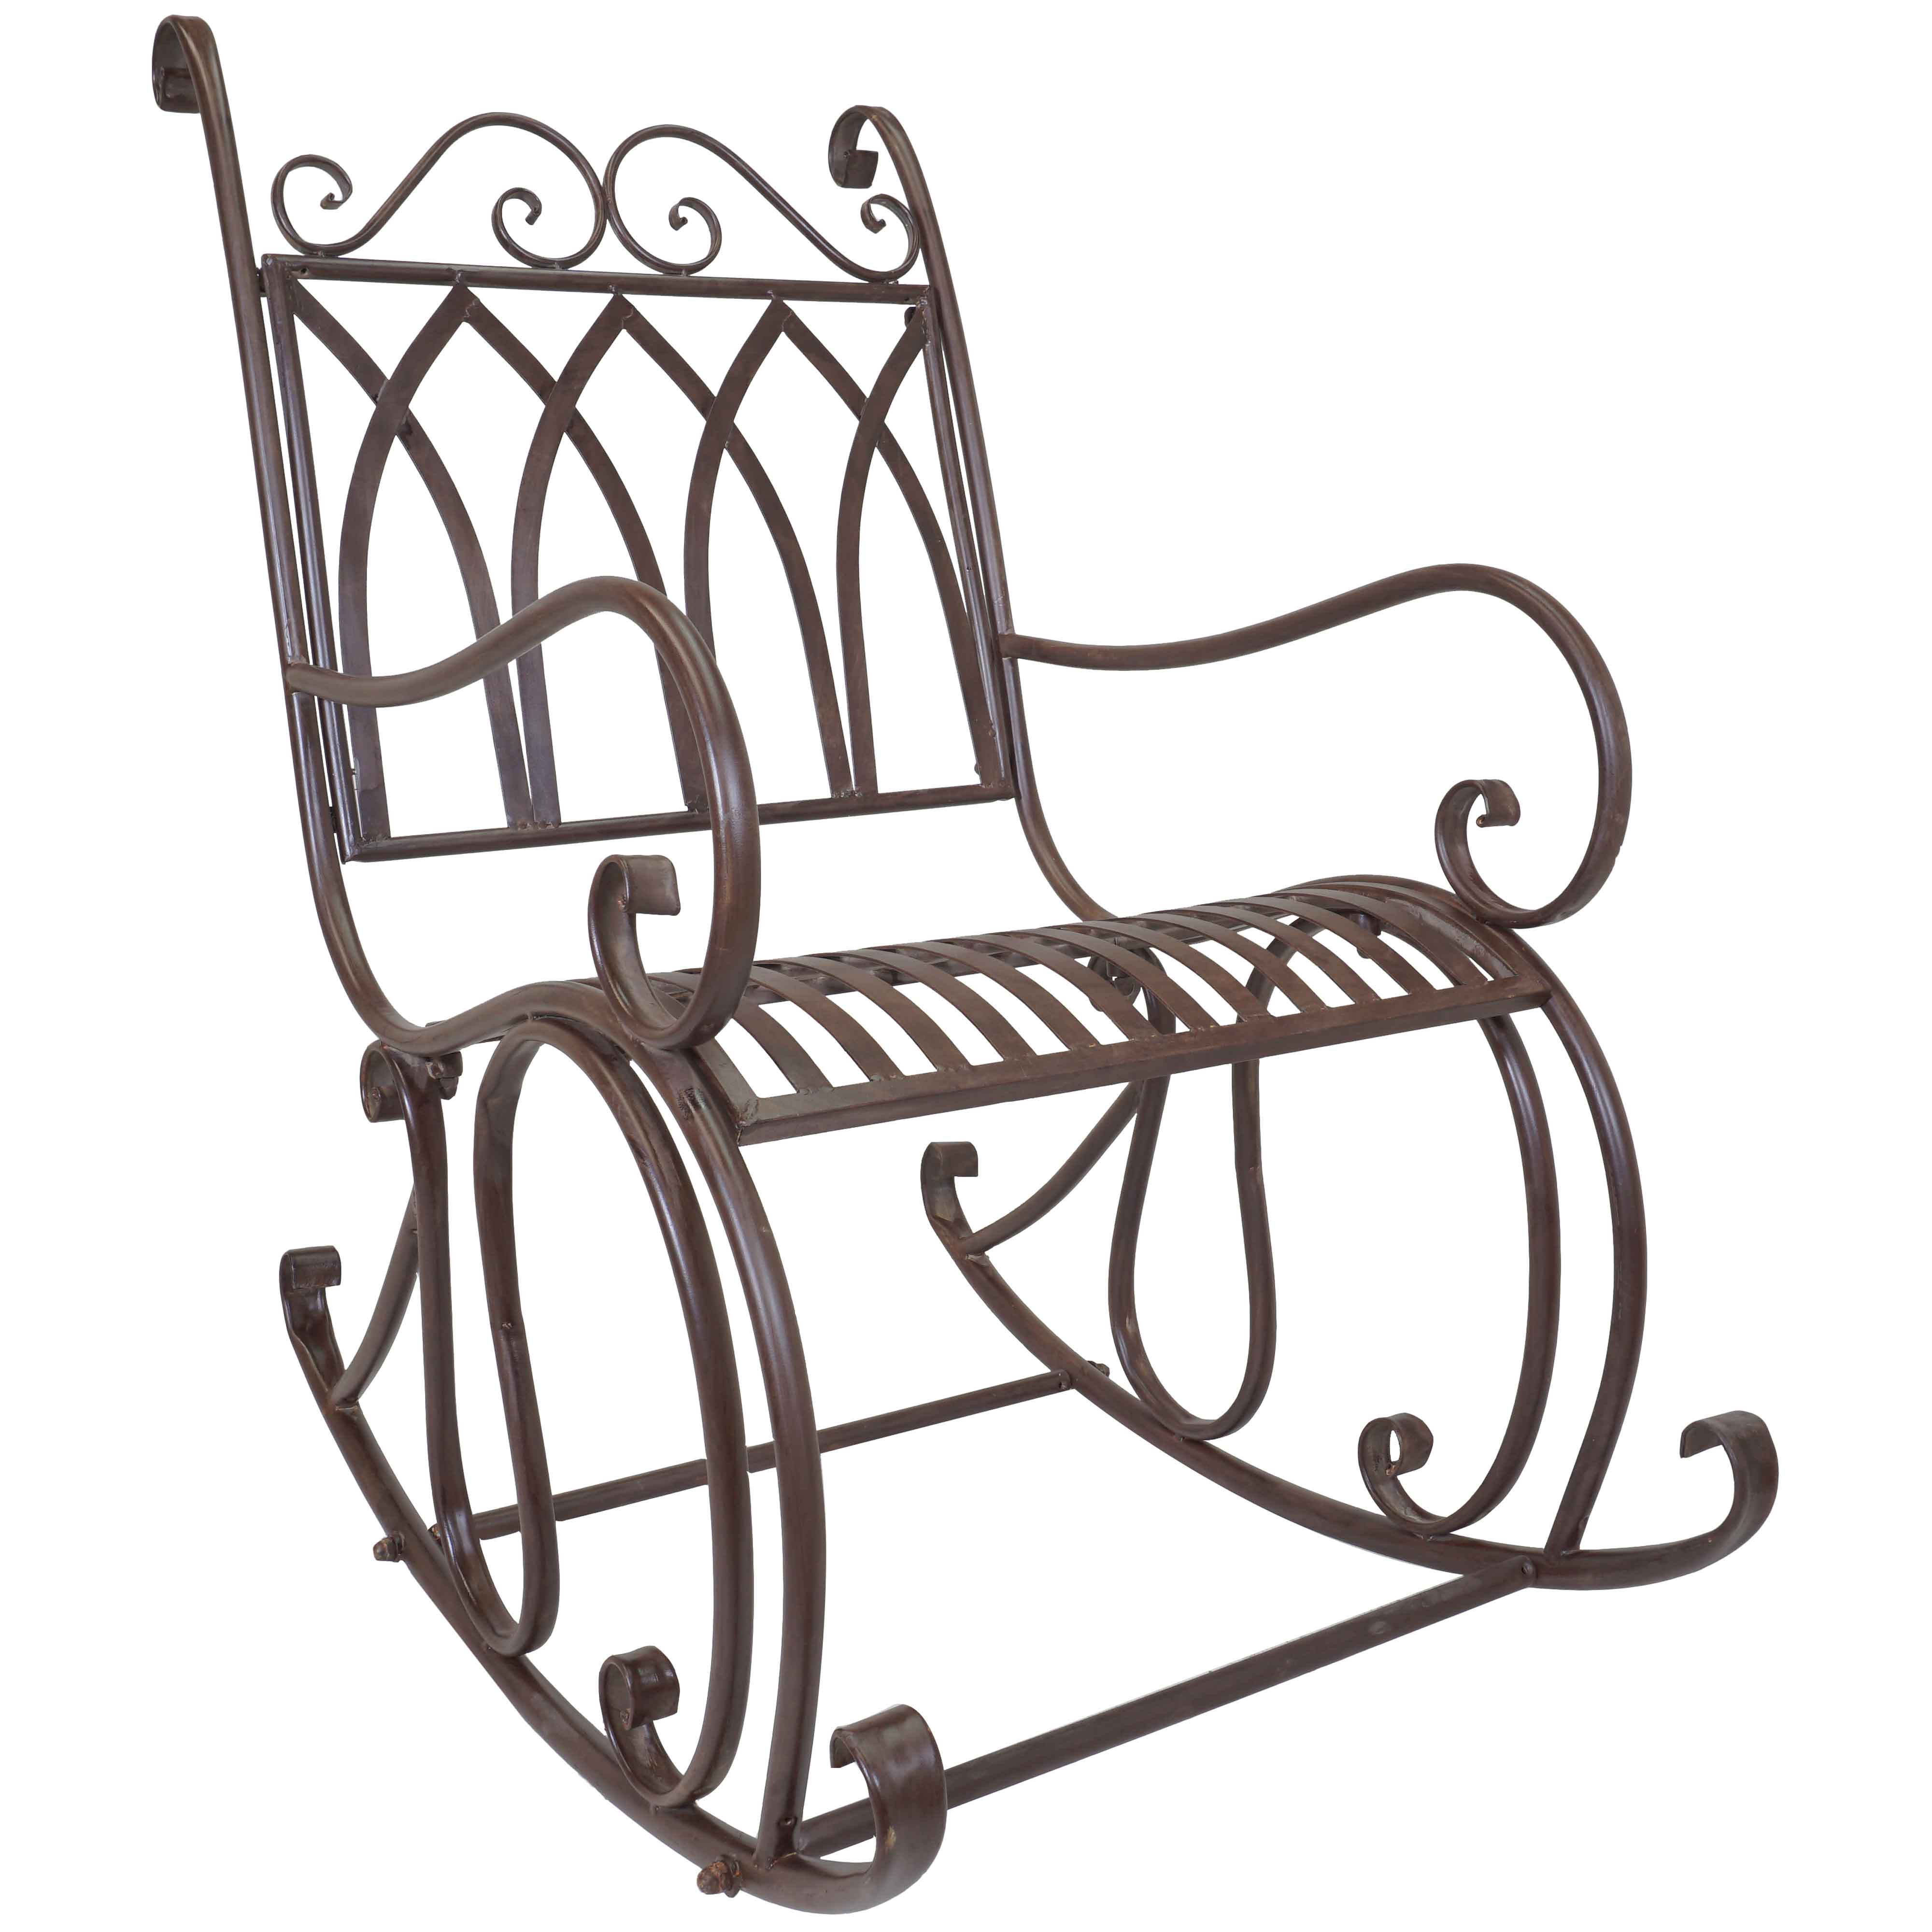 Titan Outdoor Metal Rocking Chair Porch Patio Garden Seat Deck Decor